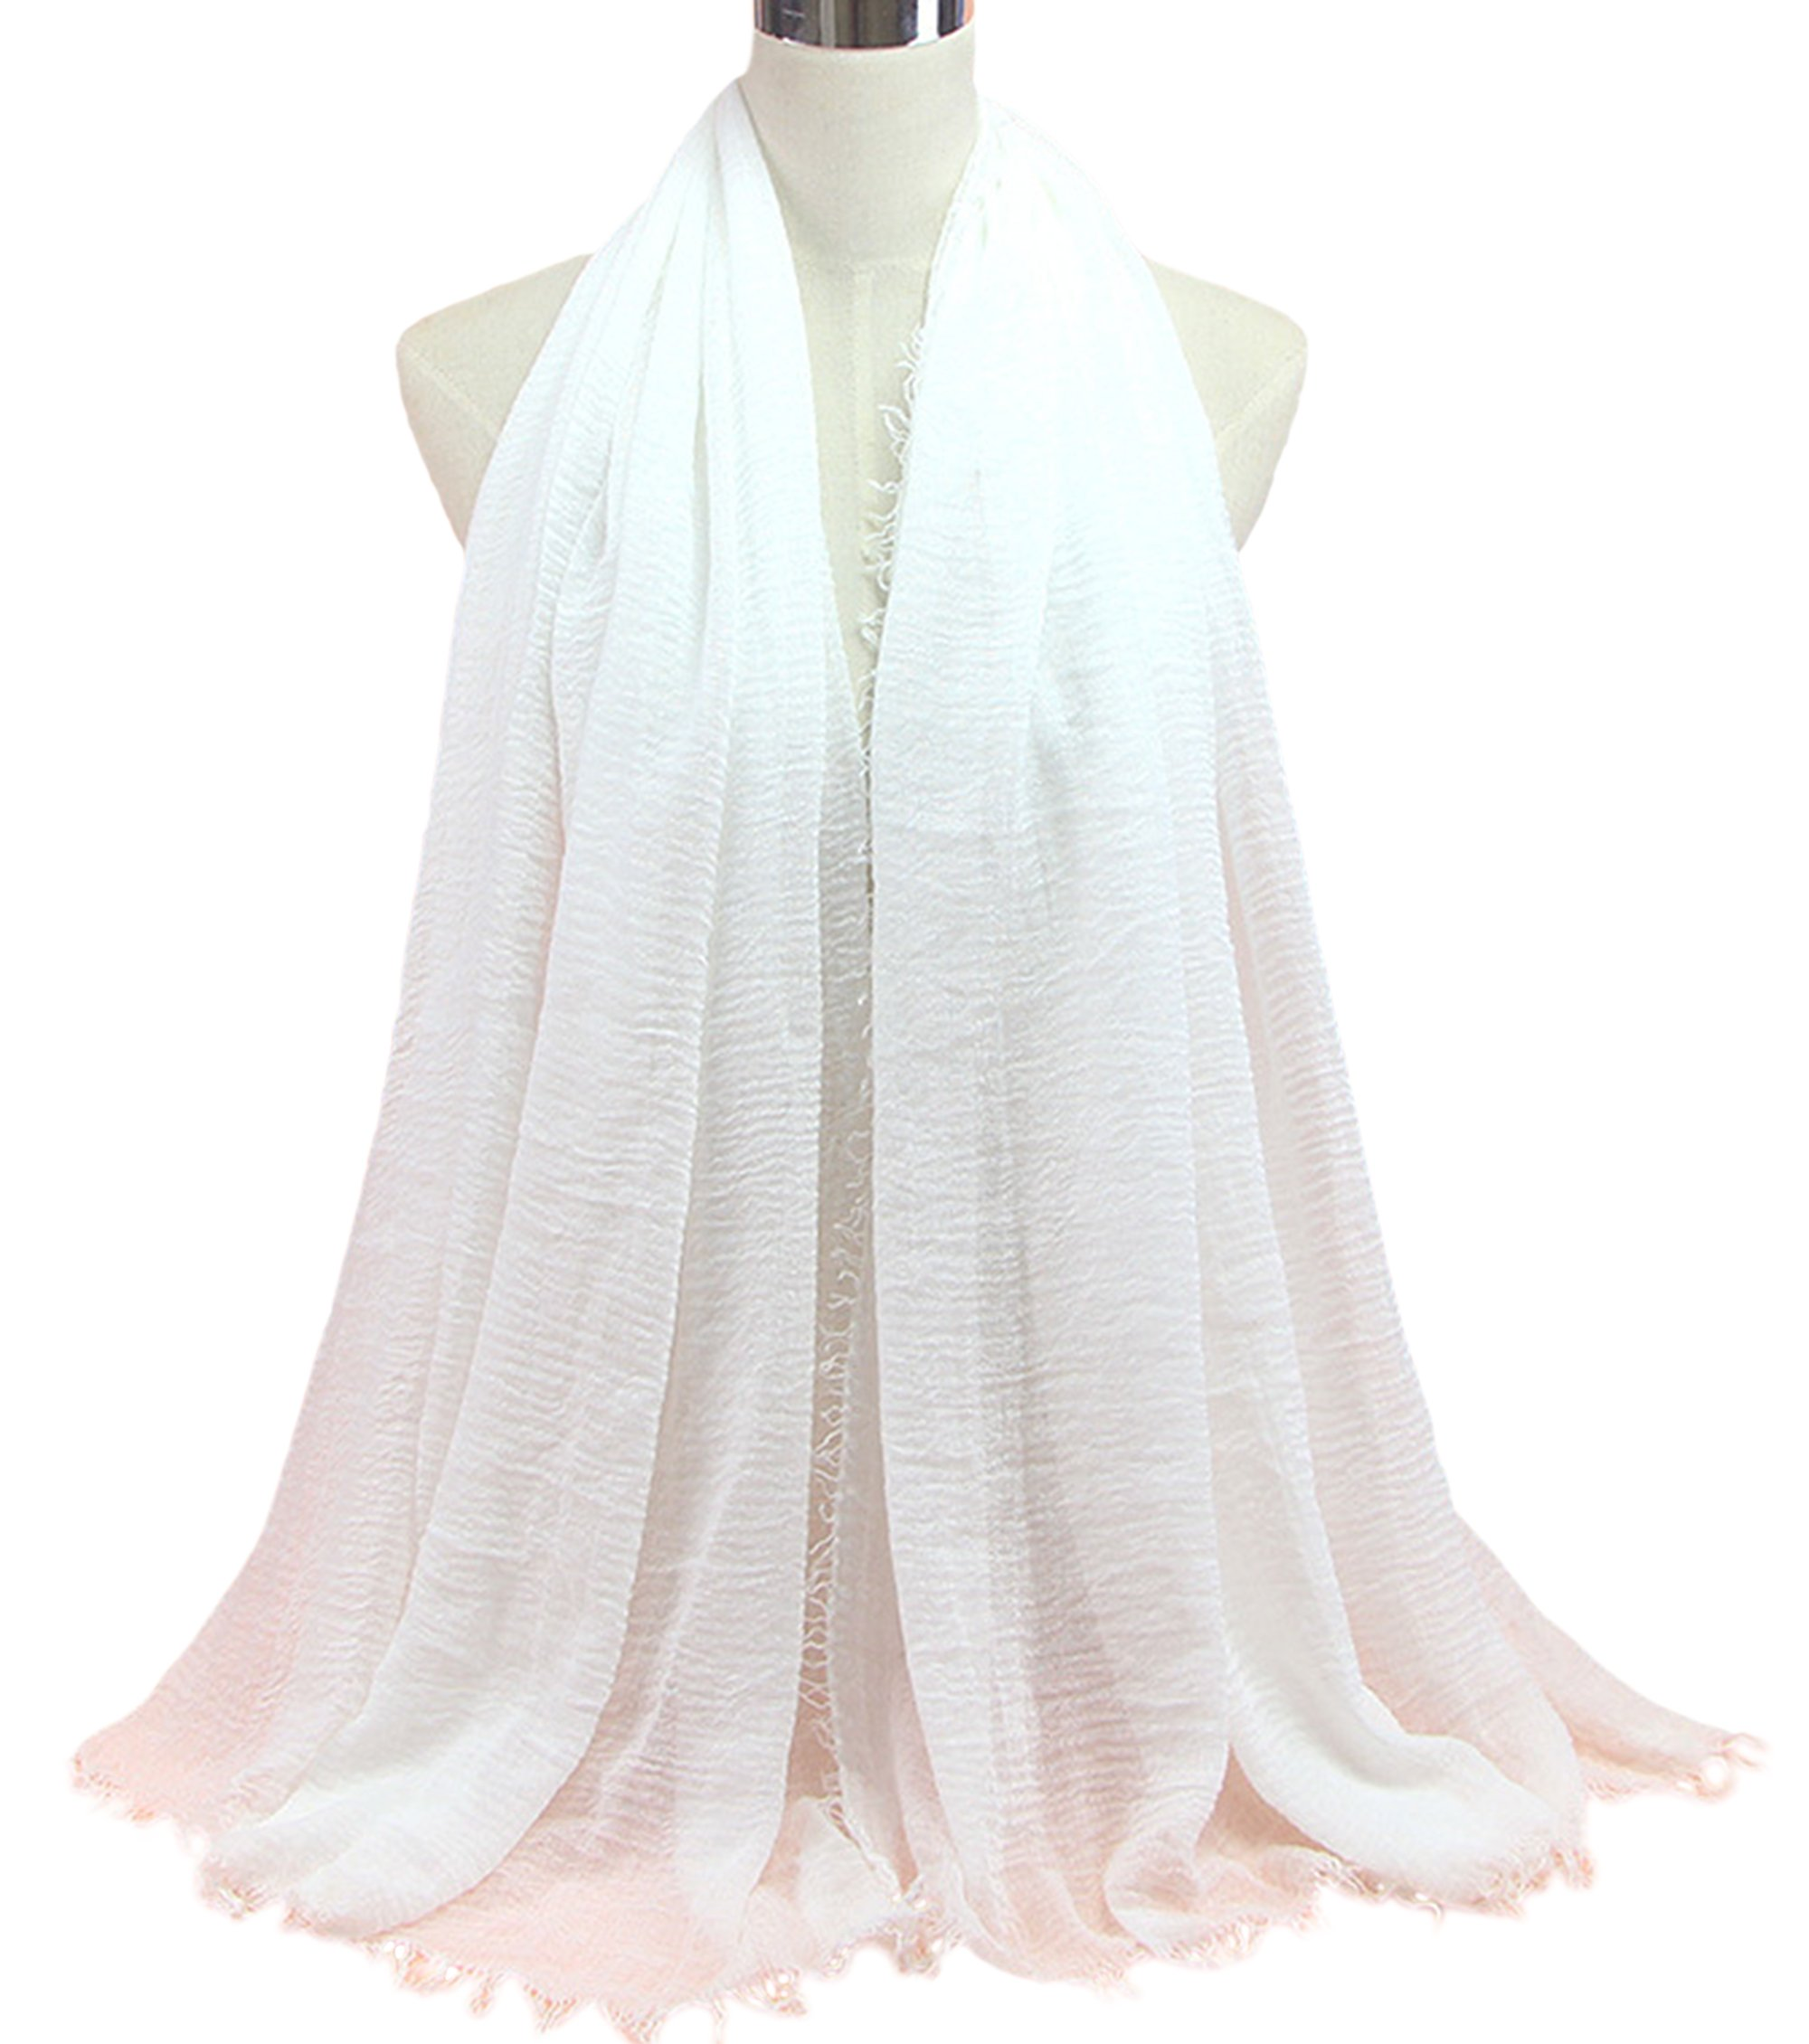 Astage Crinkled Cotton Wrap Shawl Scarf Light Muslim Raw Fringe Scarves 2pcsWhite